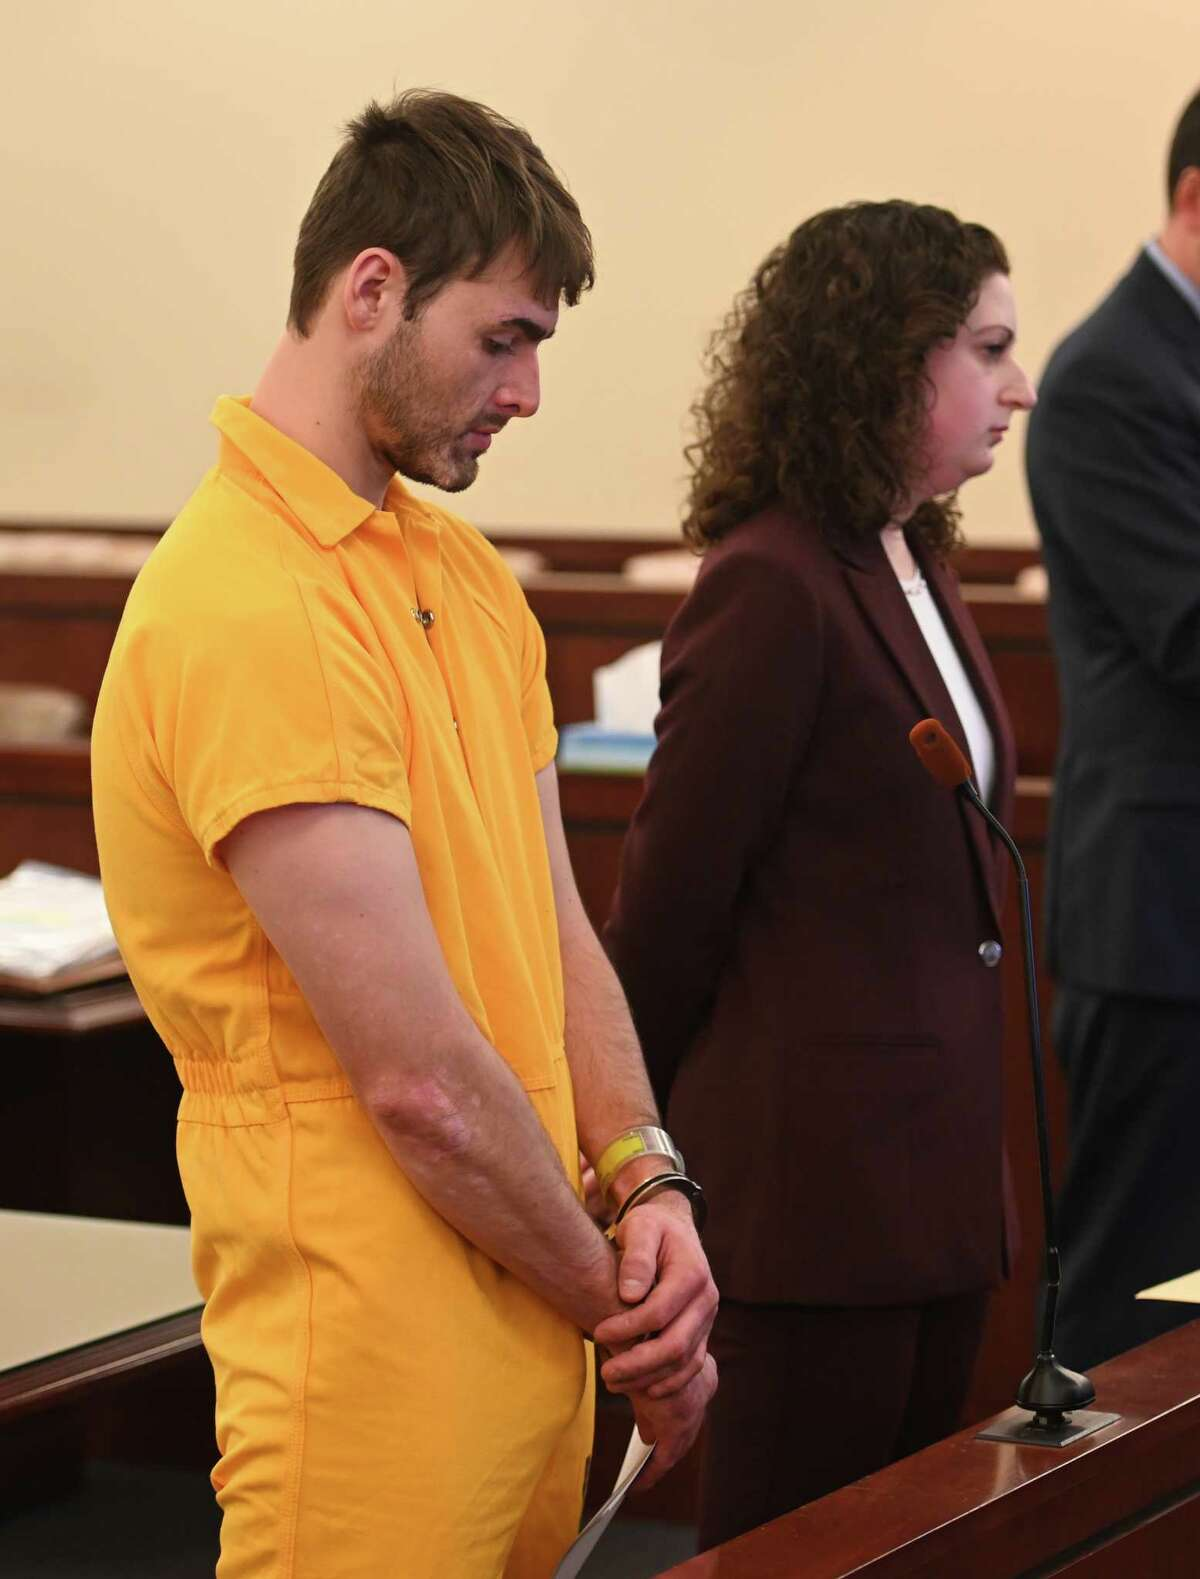 Thomas Slivienski, left, was arraigned in front of Judge Peter Lynch for the alleged murder of John Dunia in Cohoes Friday Nov. 30, 2018 at the Albany County Judicial Center in Albany, N.Y. Representing Slivienski was Rebekah Sokol, Right. (Skip Dickstein/Times Union)